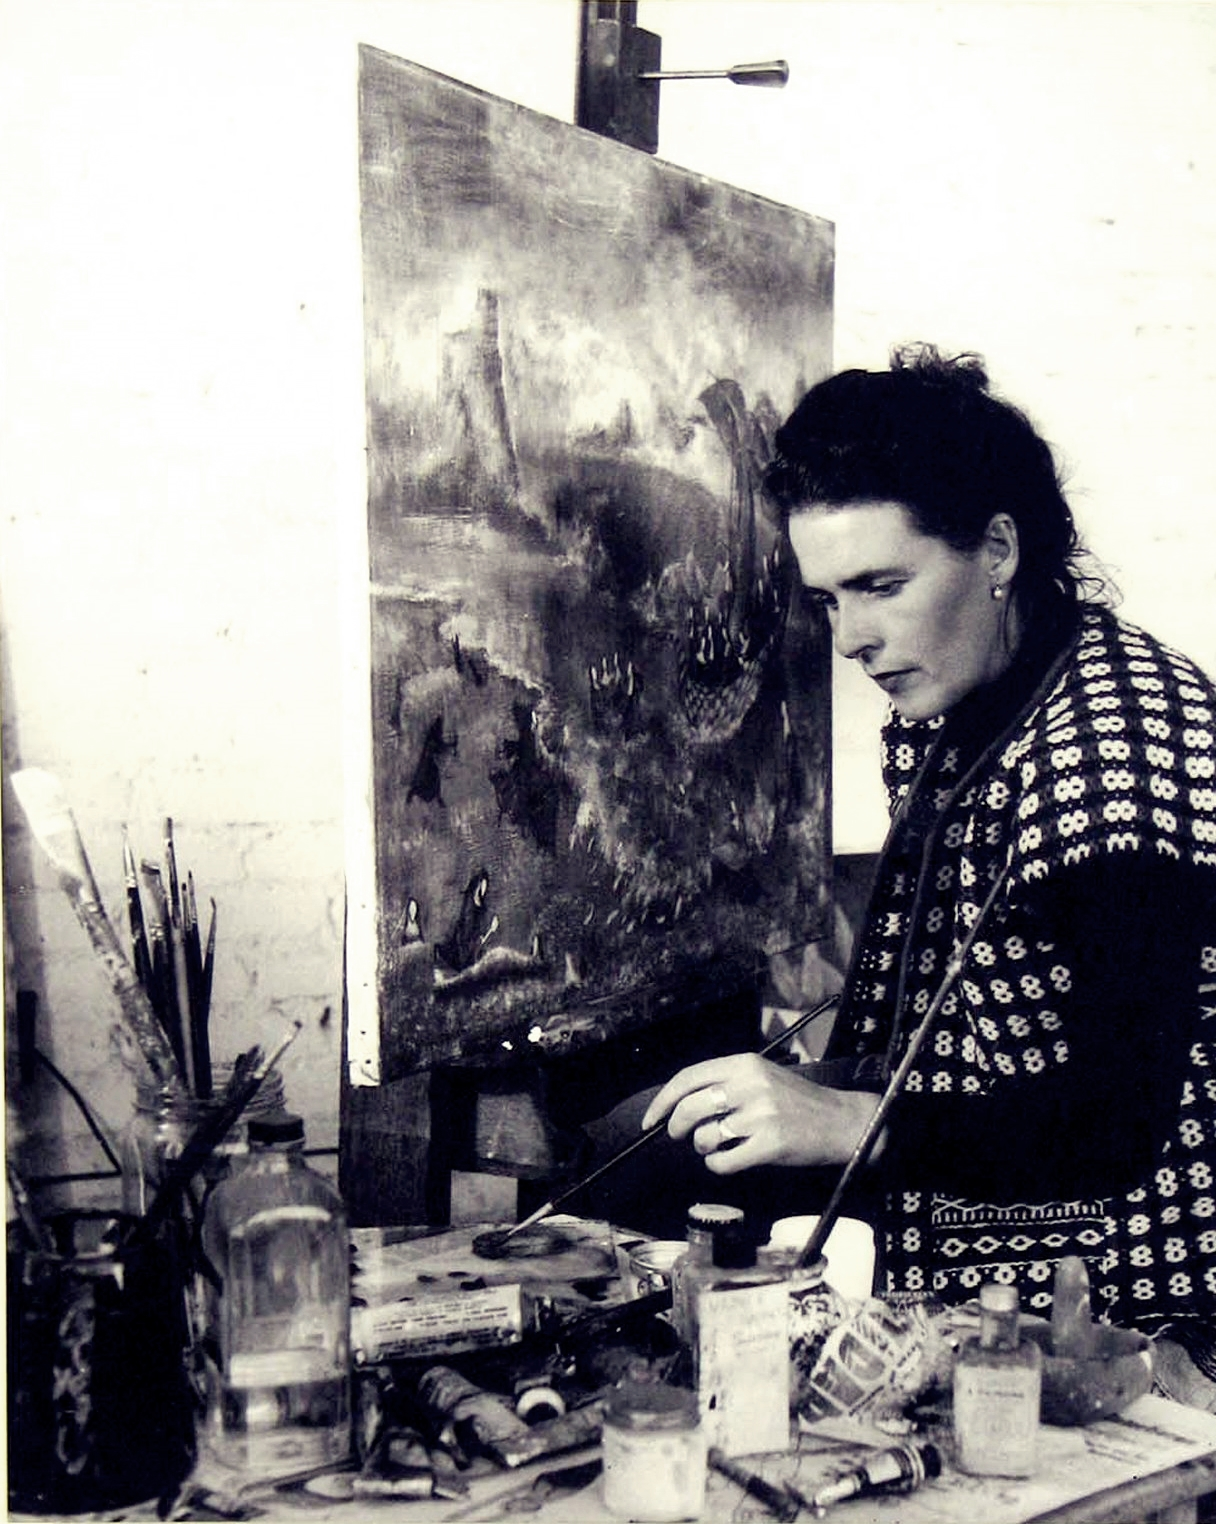 leonora carrington surrealist painter and sculptor sculpture leonora carrington 1917 2011 was a painter writer sculptor alchemist visionary and was the darling of the 1930s surrealism movement